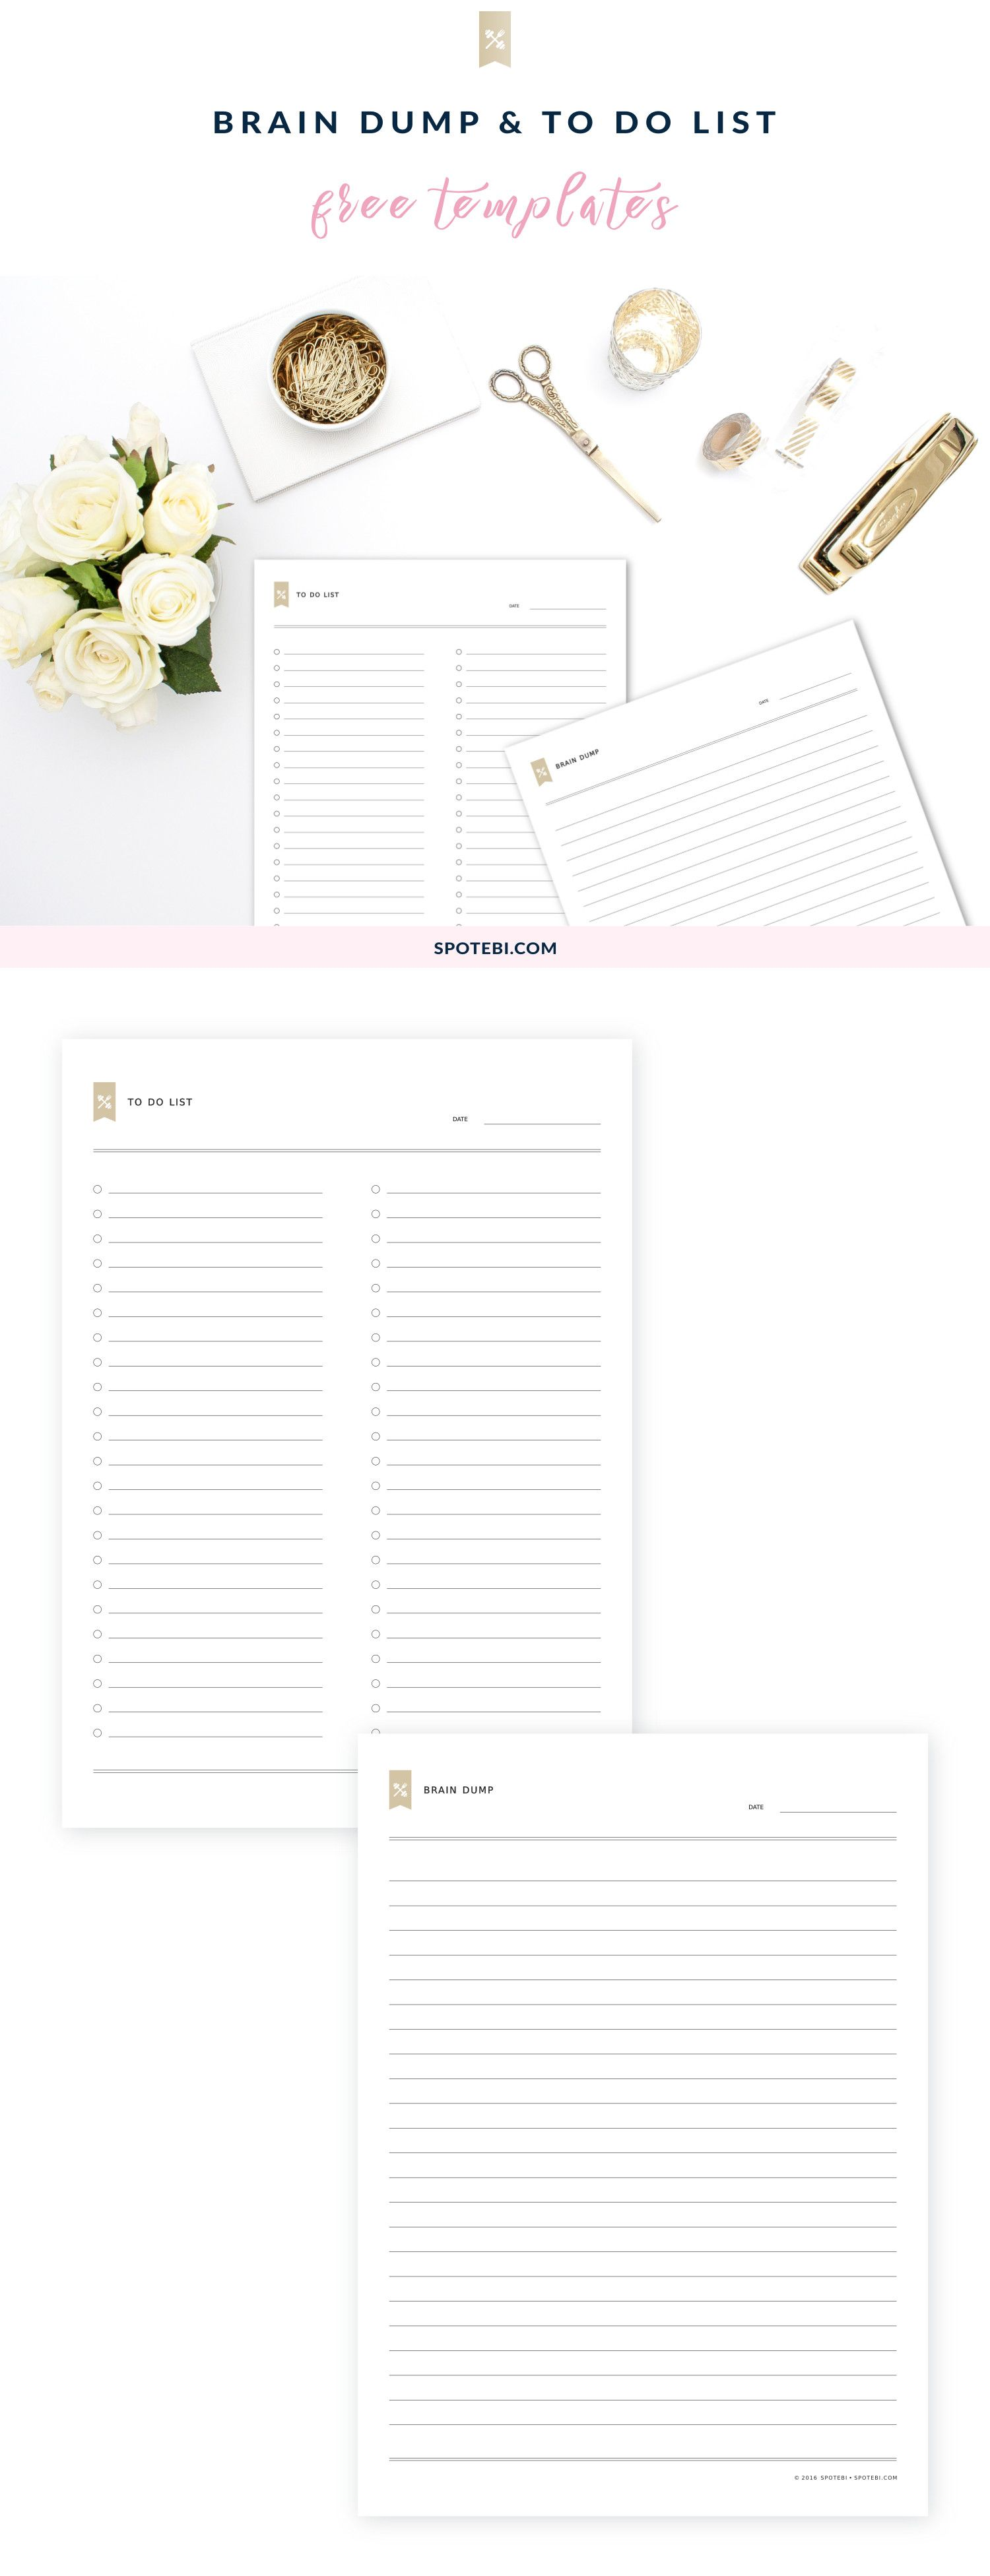 Download our brain dump template, write down your thoughts and future projects and pick out the ideas you like the most. Print our to do list template and write down all the steps you need to take to accomplish that goal! http://www.spotebi.com/fitness-tracker/brain-dump-to-do-list-templates/